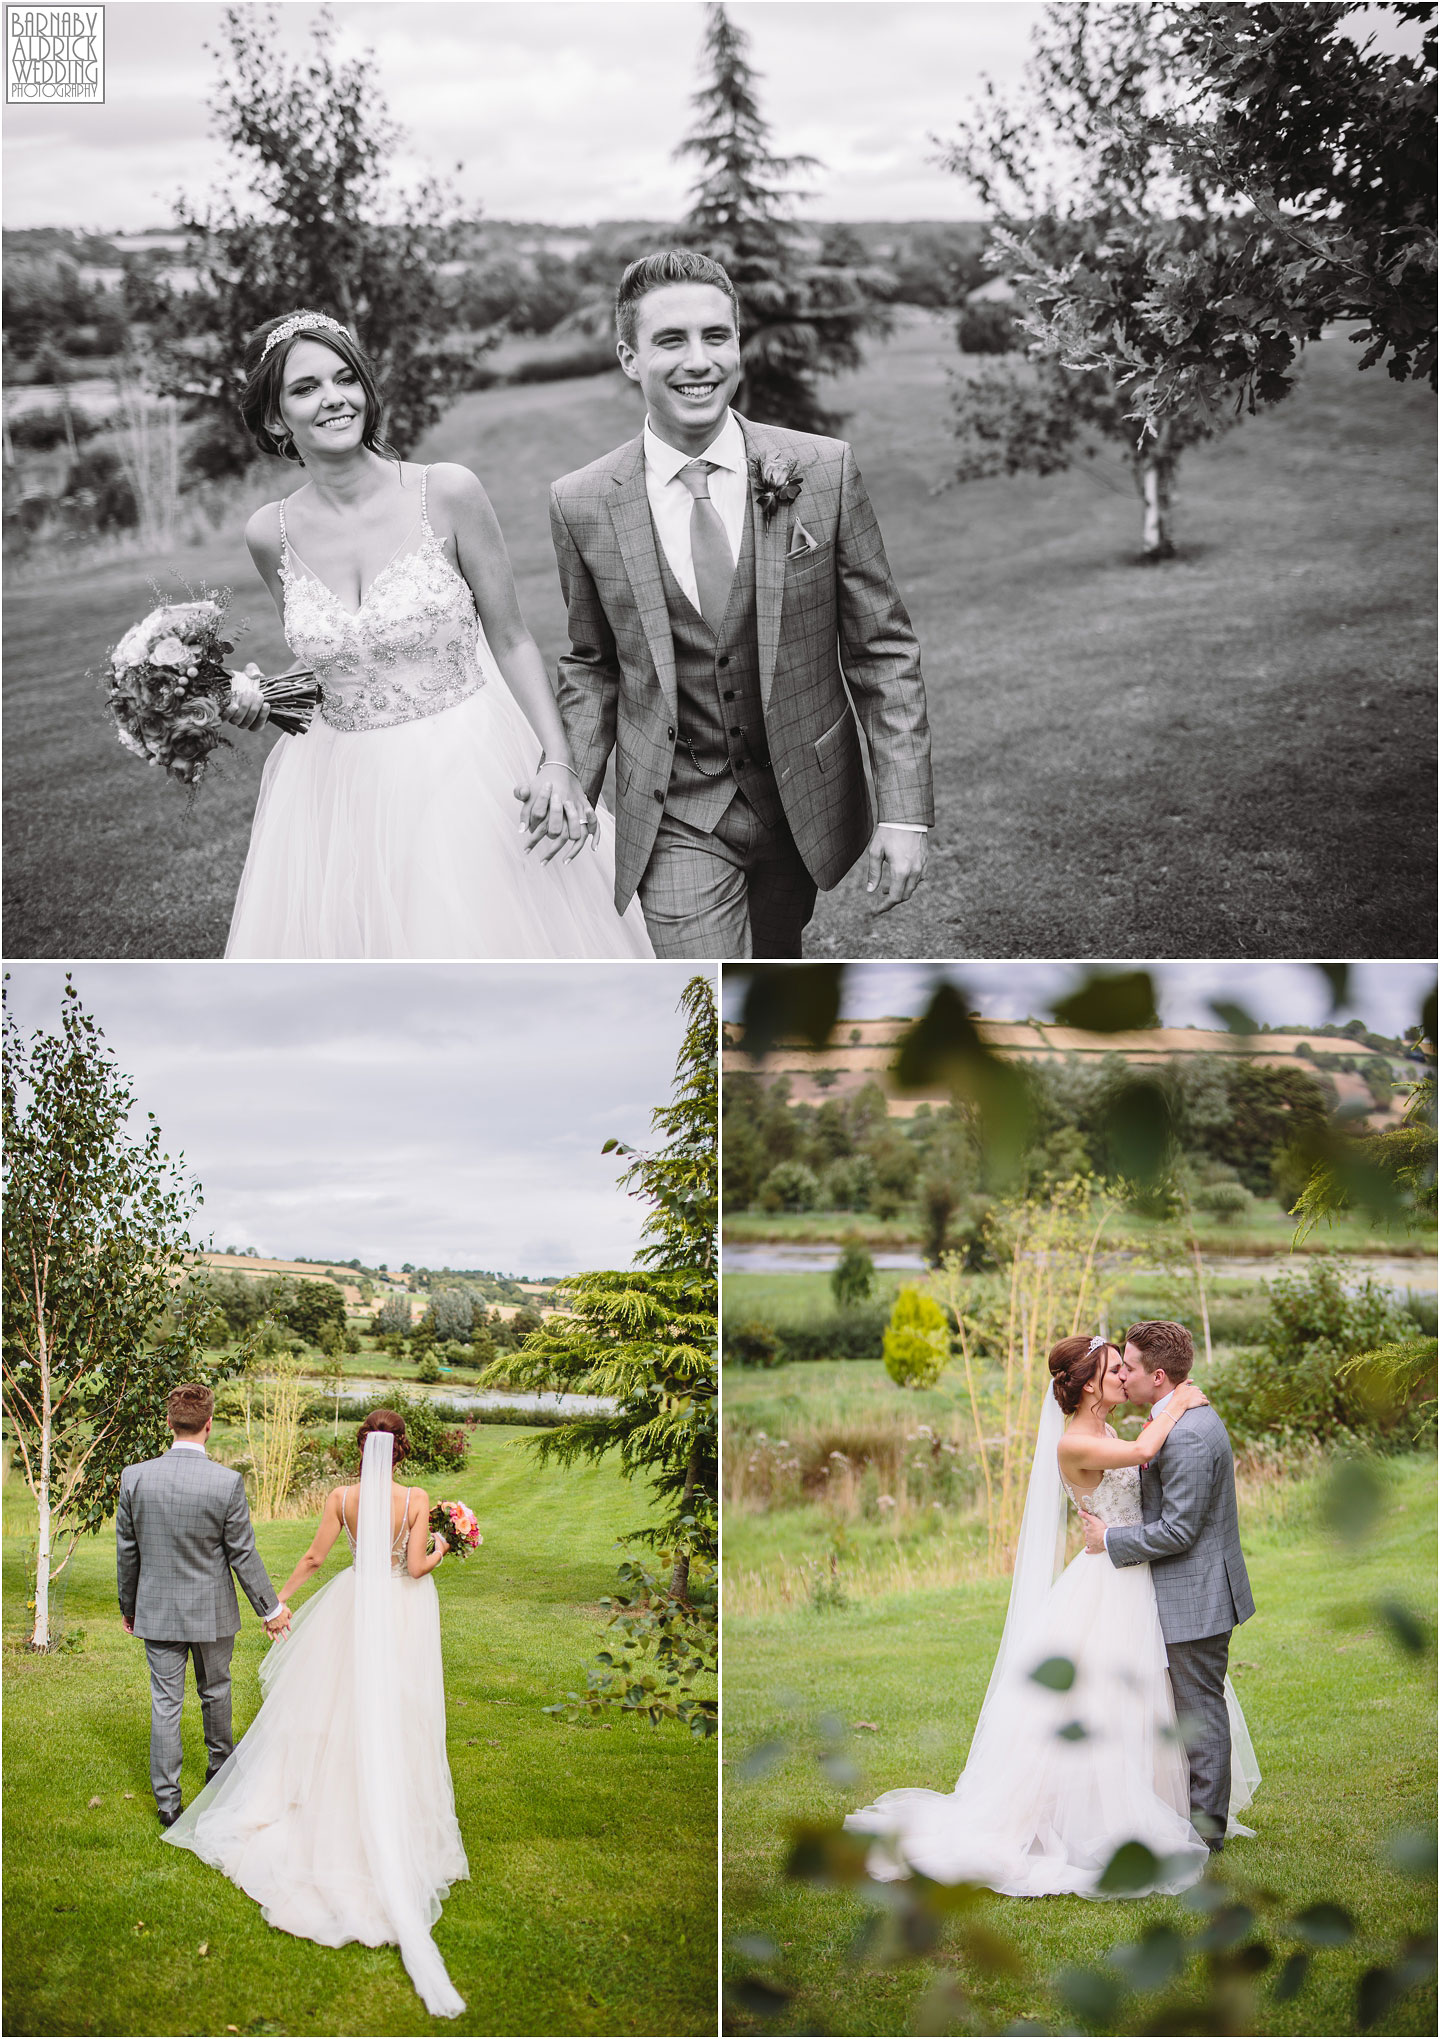 Relaxed wedding couple portraits at Yorkshire Wedding Barn near Richmond